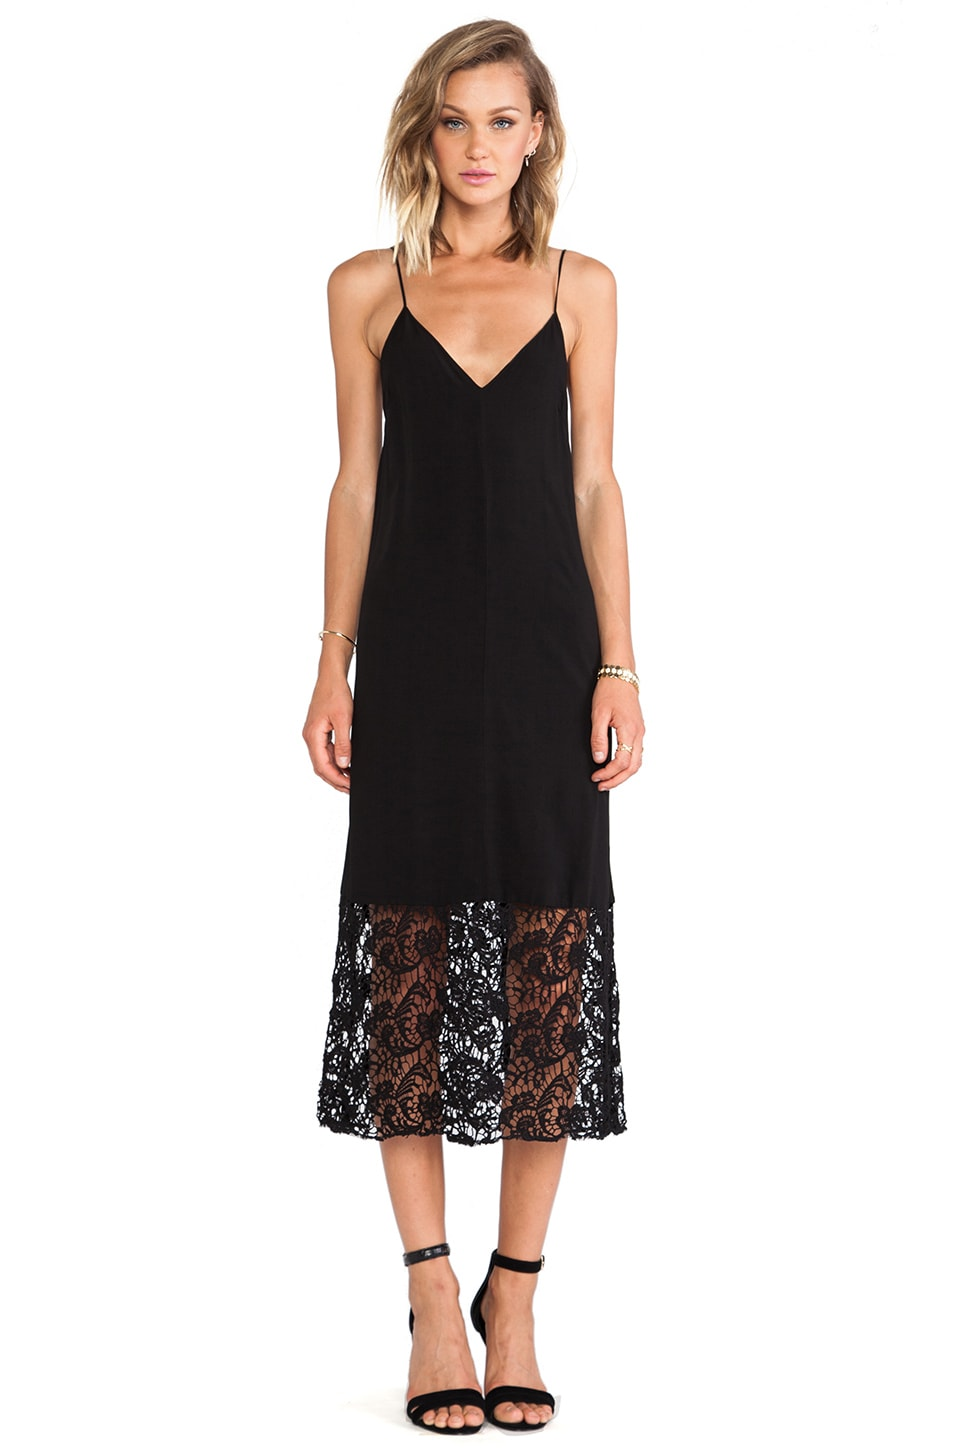 SAM&LAVI Genivee Dress in Black